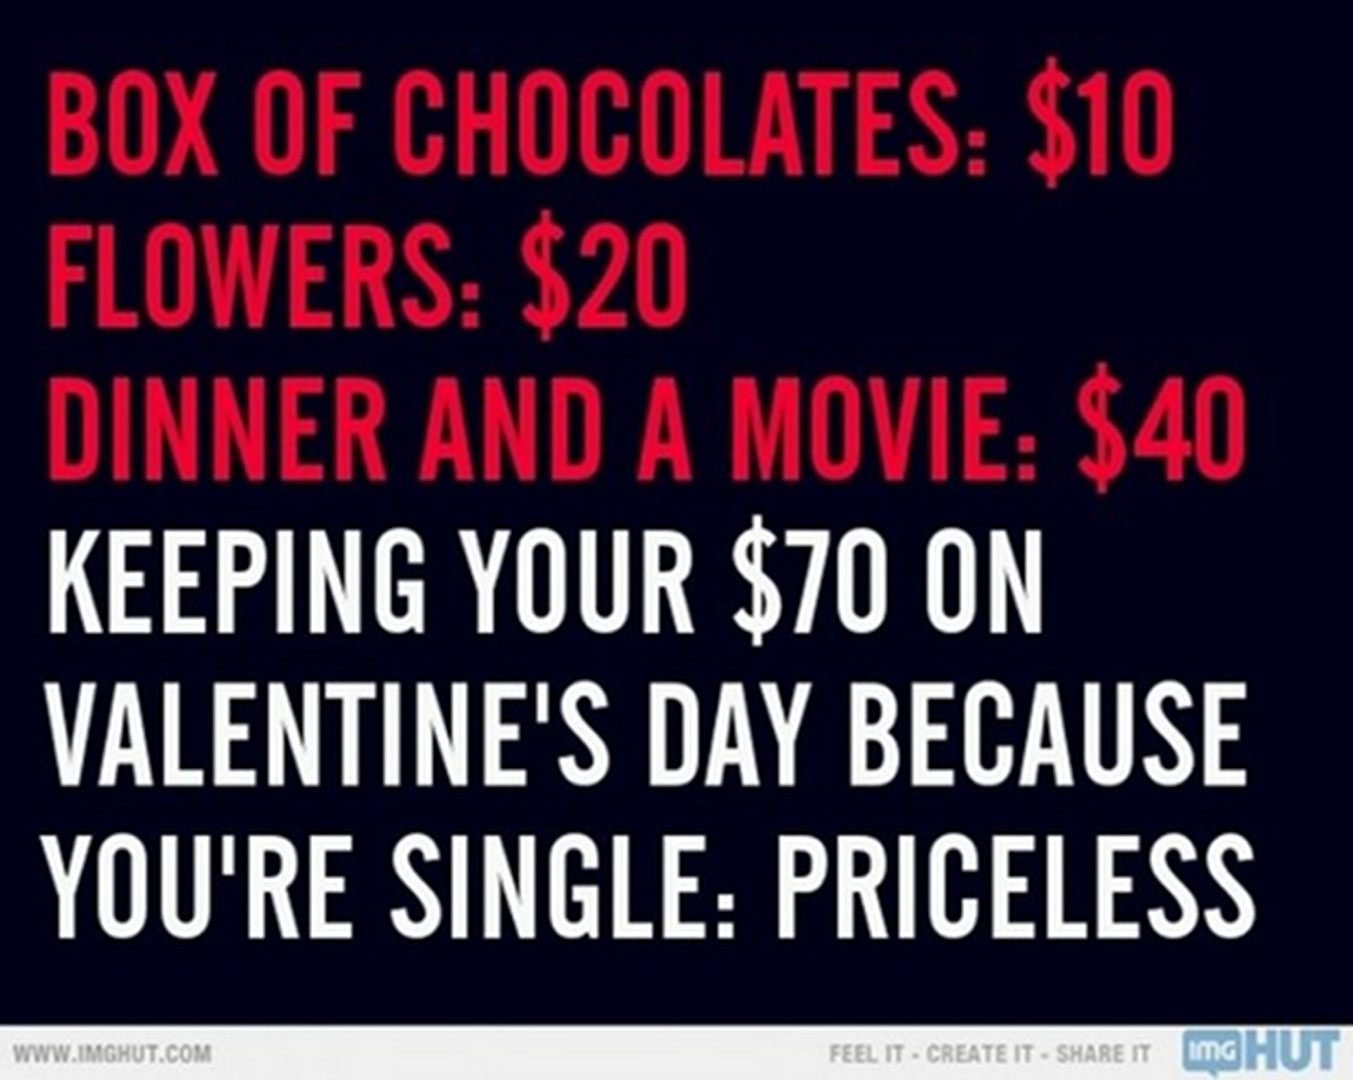 valentined-day-savings_small